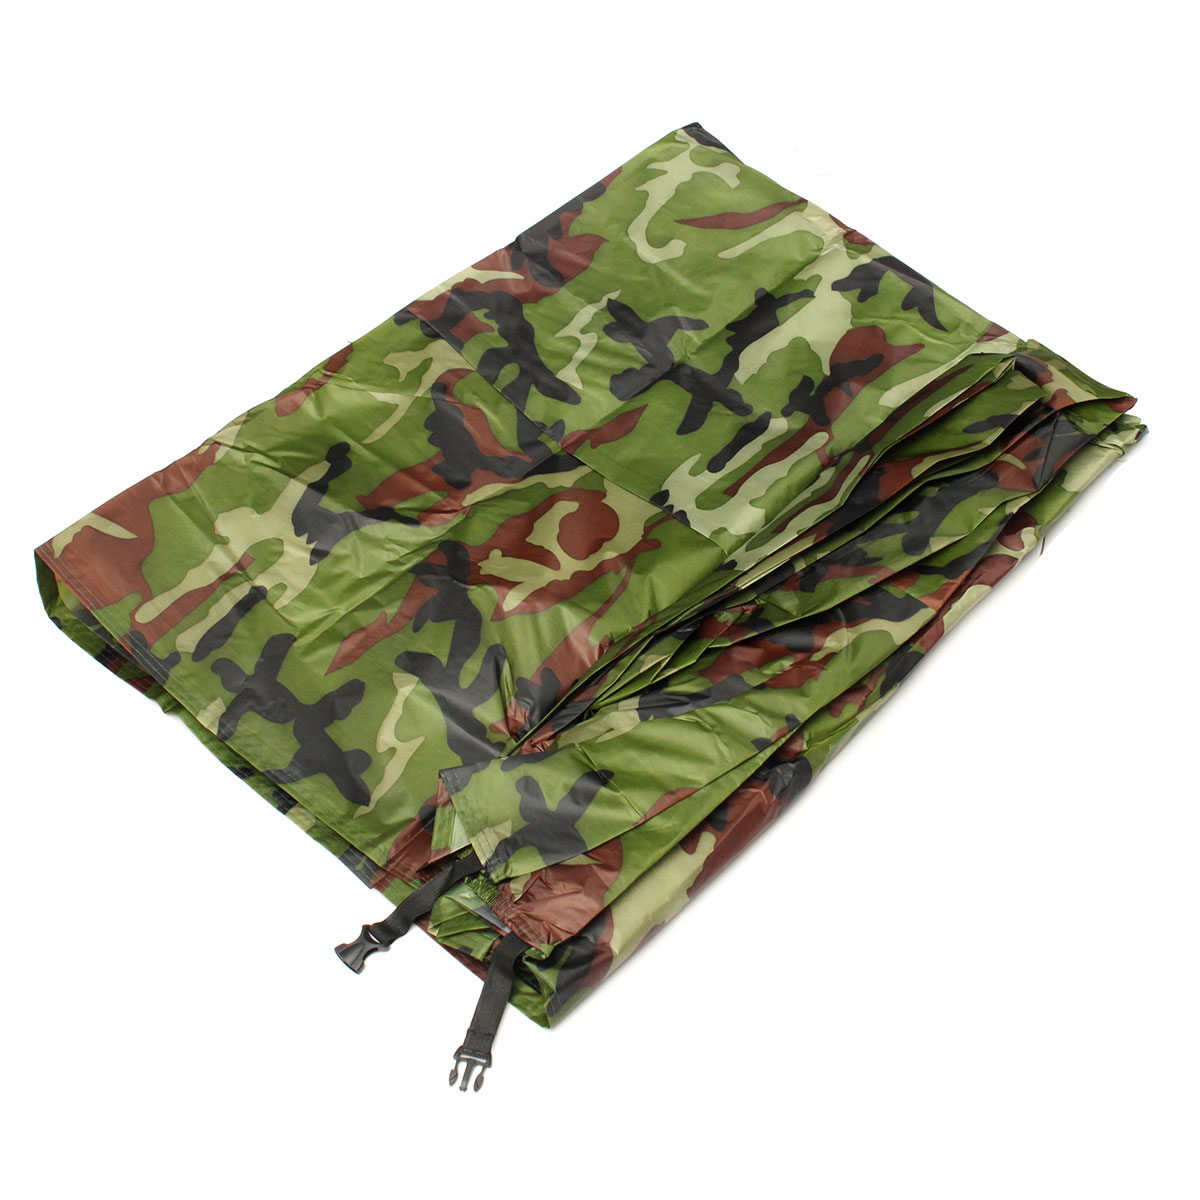 Motorcycle Bike Scooter Rain Dust Cover Protector Camouflage XXL